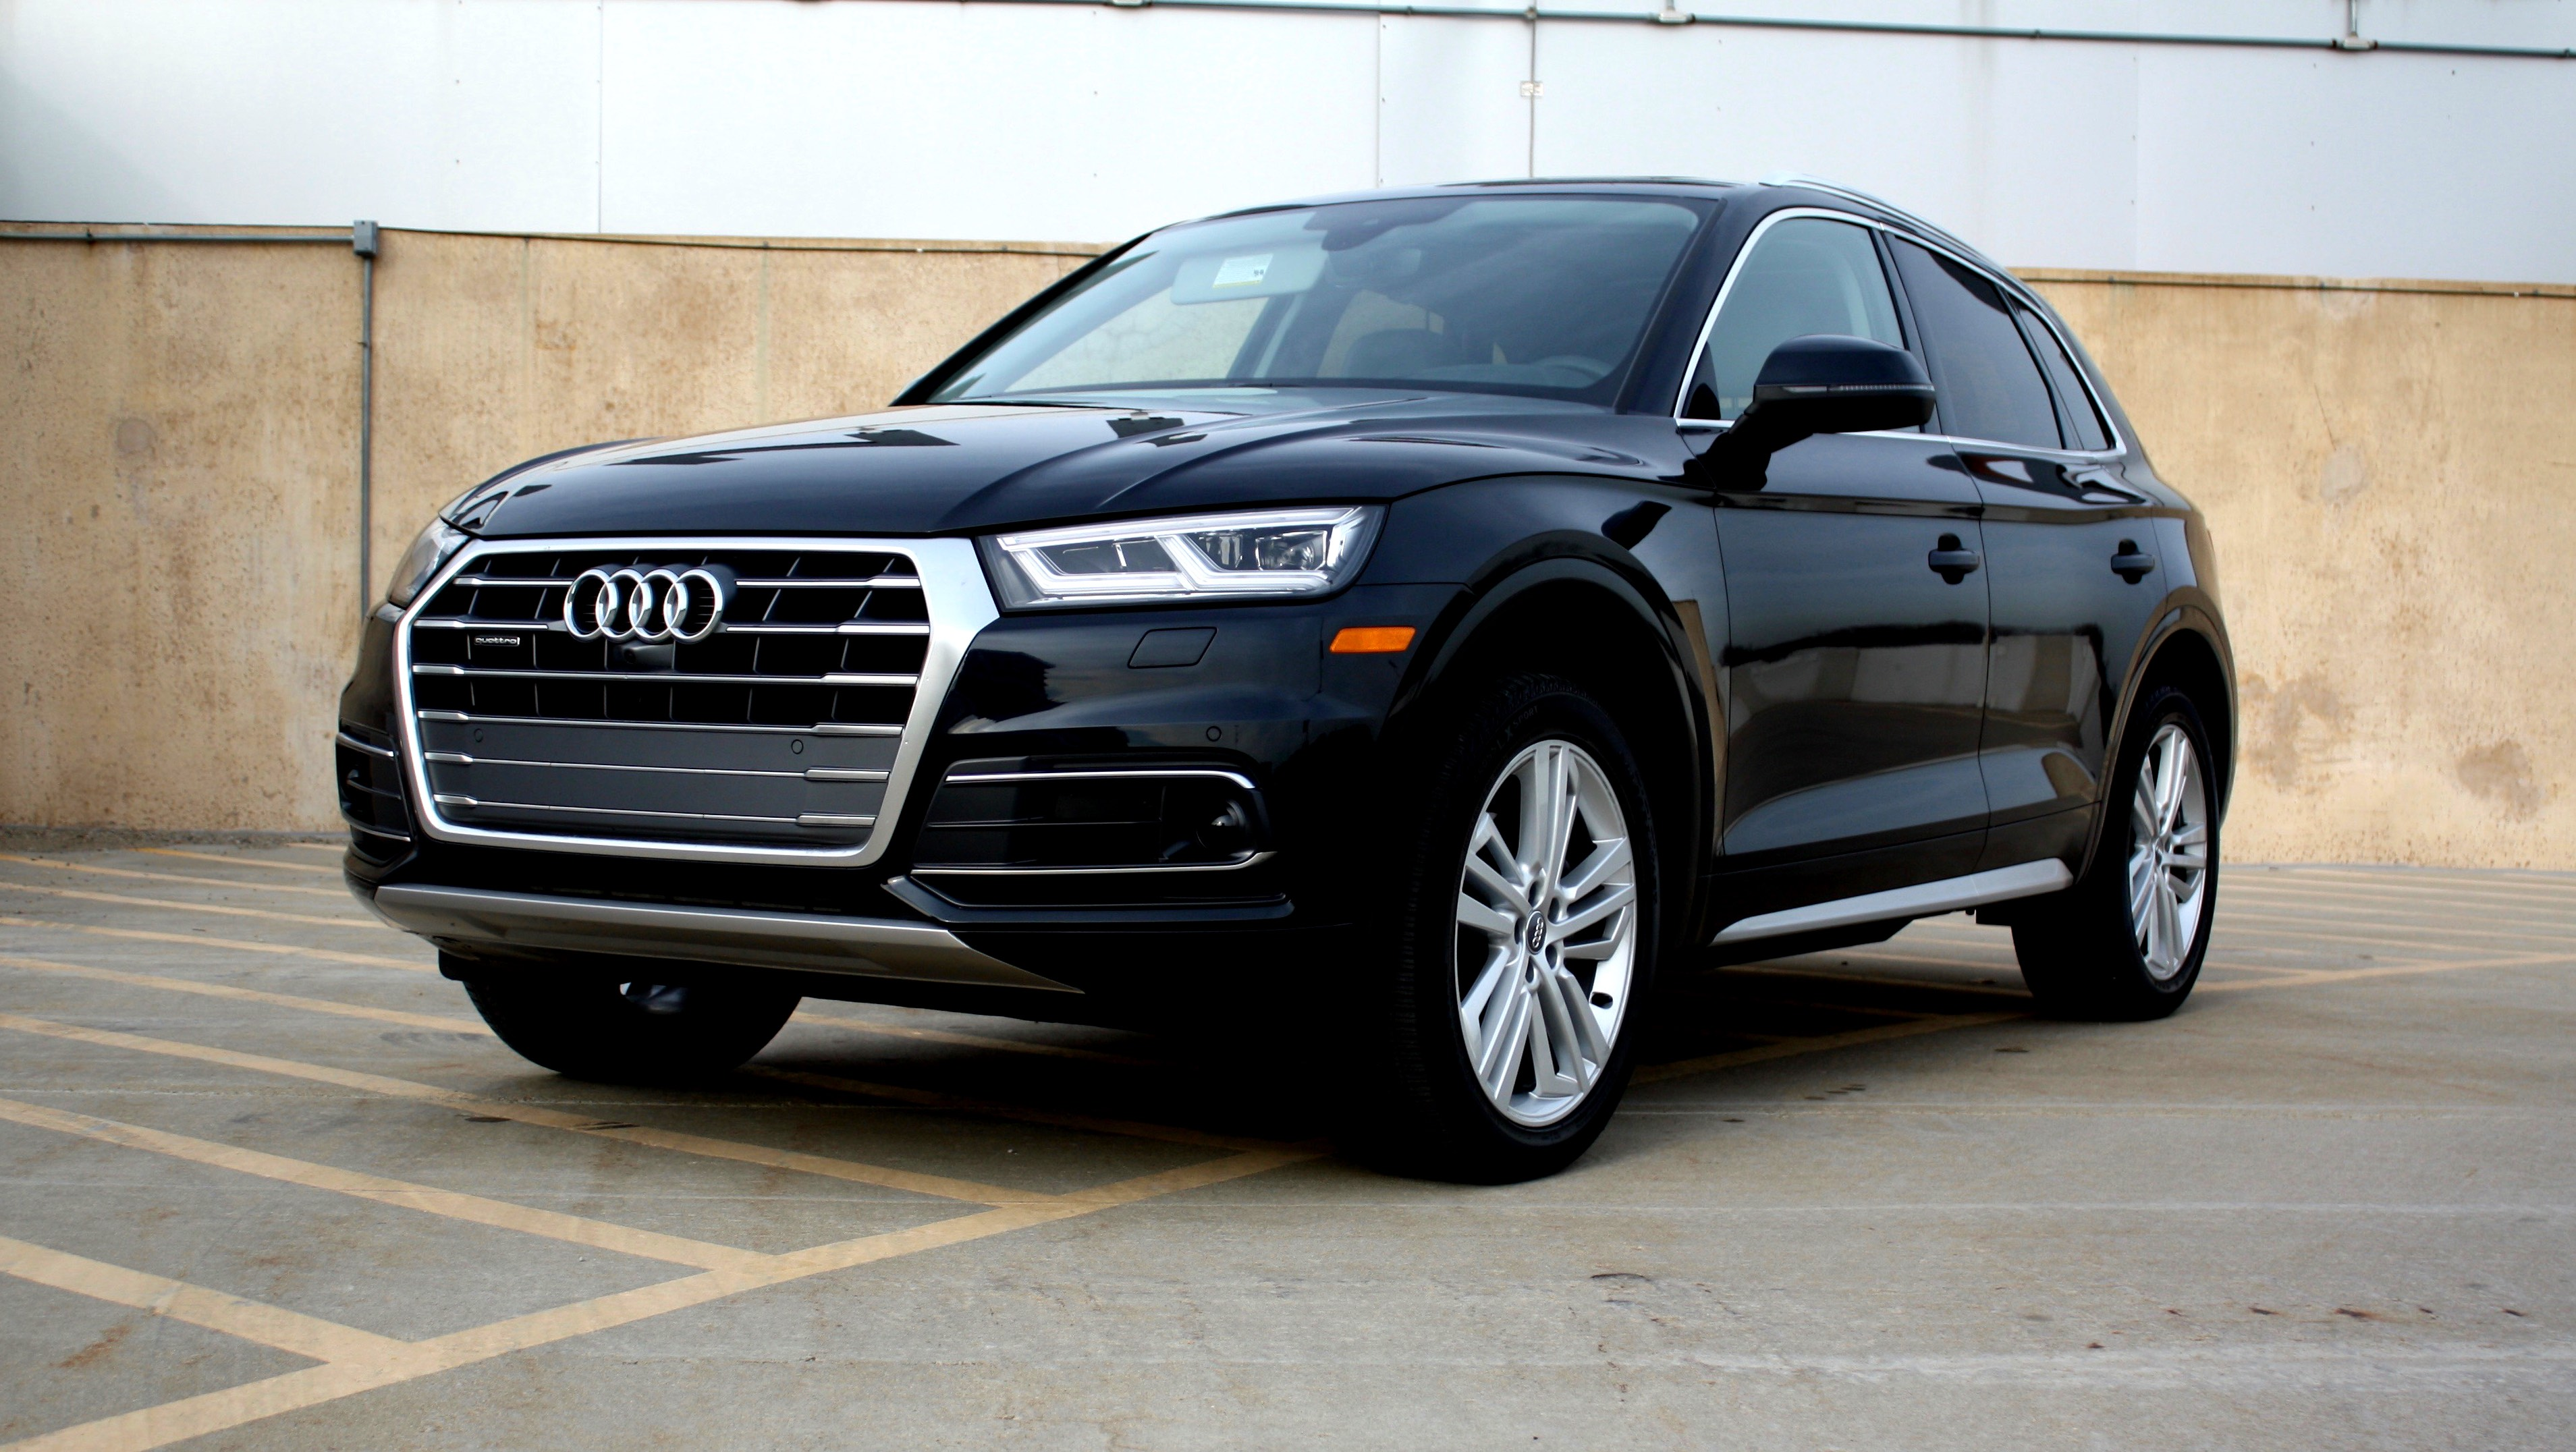 A Sea Of Calm Behind The Wheel The Audi Q Reviewed Ars - Audi car q5